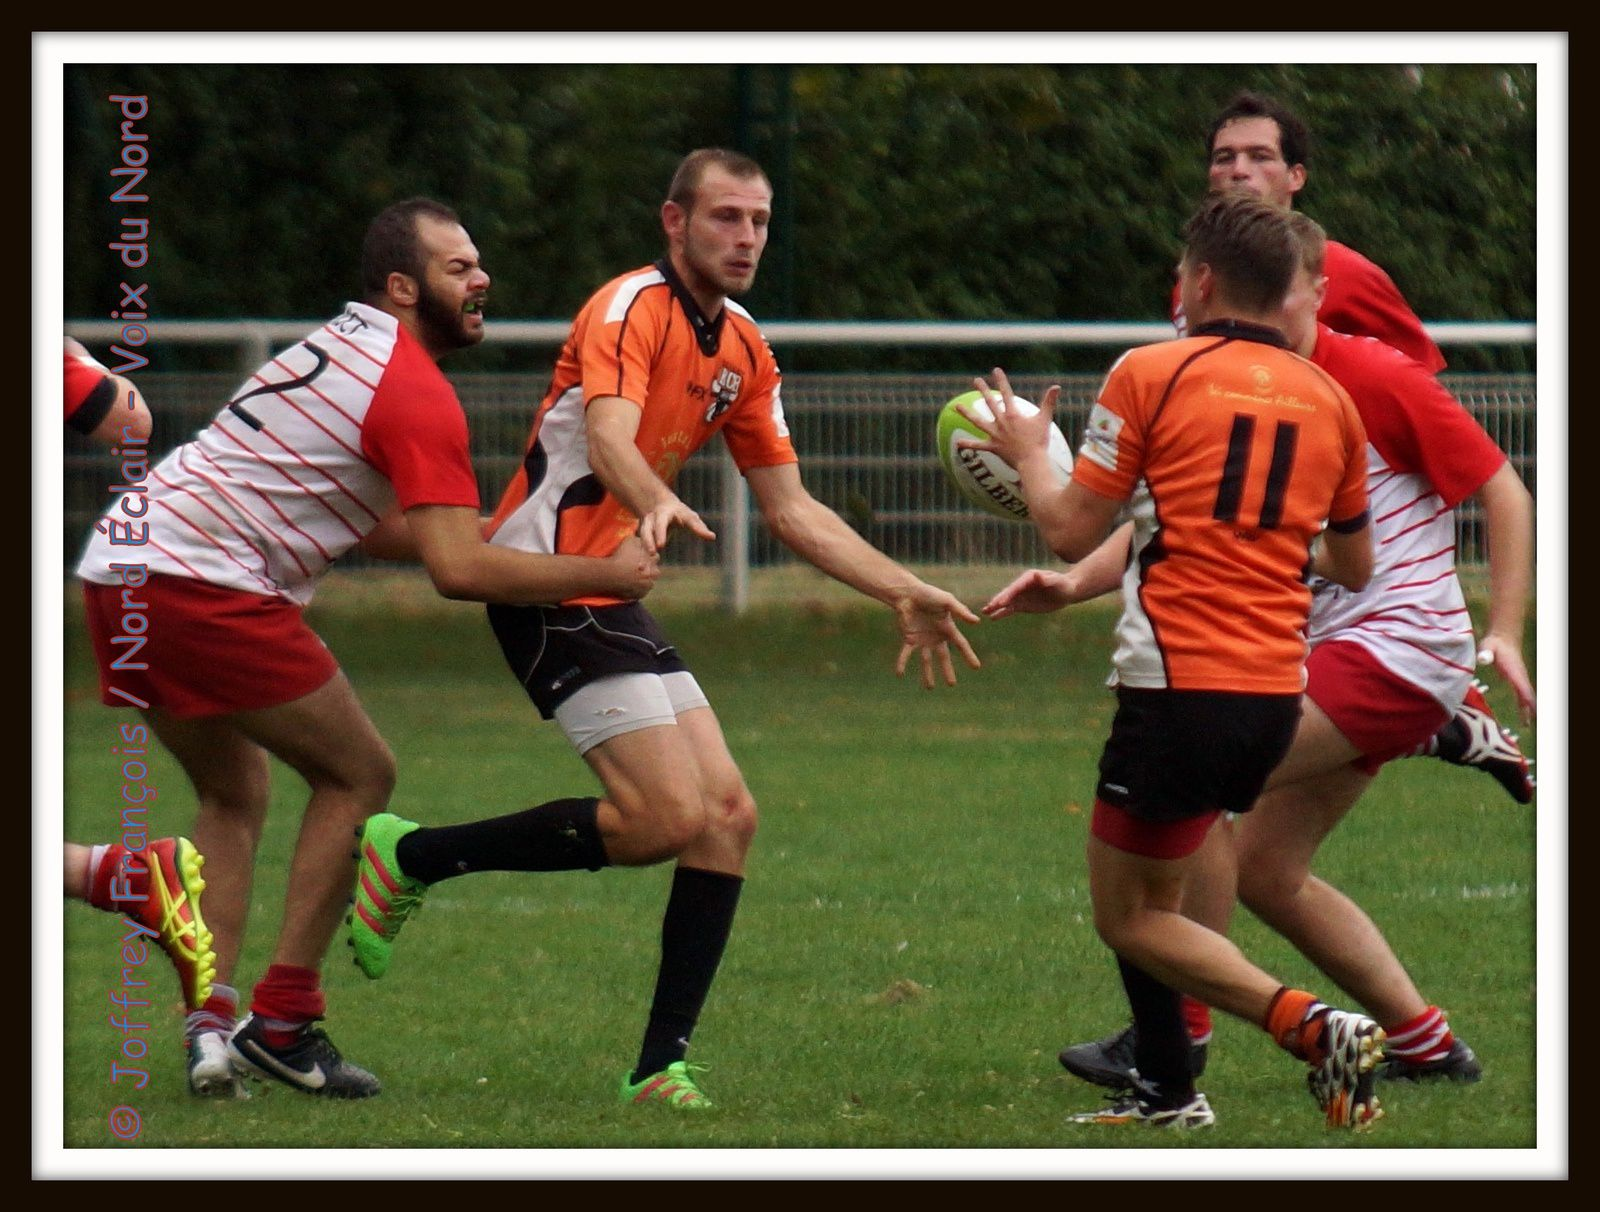 25.09.16 Foot CFD tour 4 + Derby Rugby